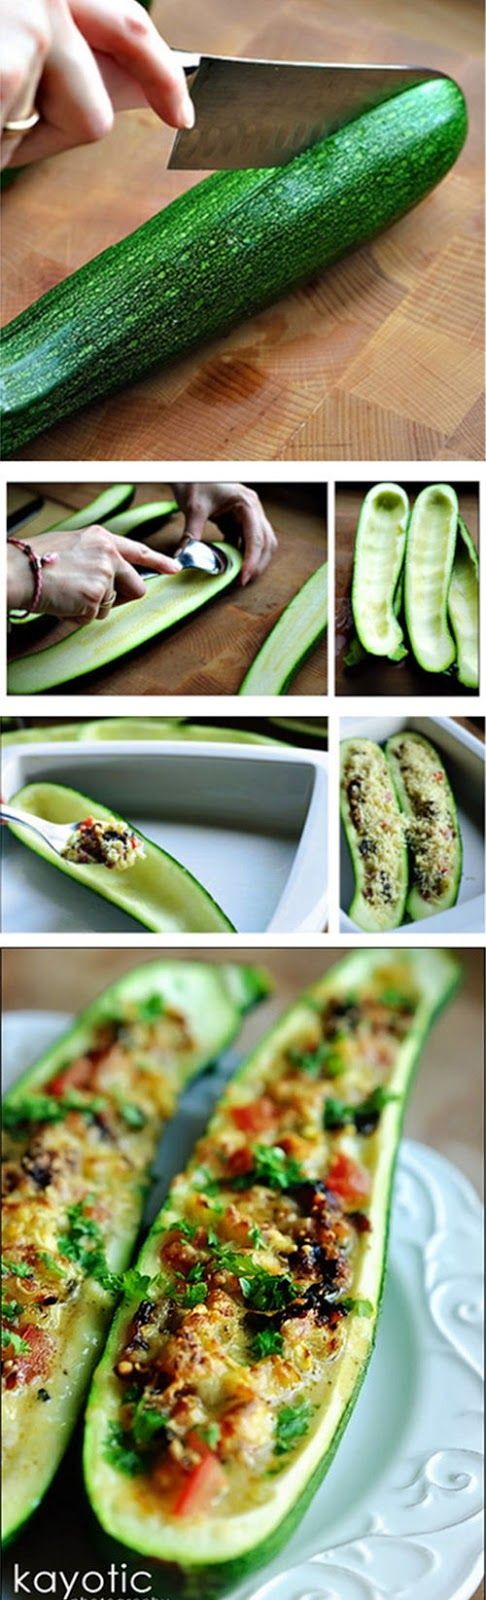 Stuffed Zucchini. I don't cook much but I have actually done something like this and it was so yummy!